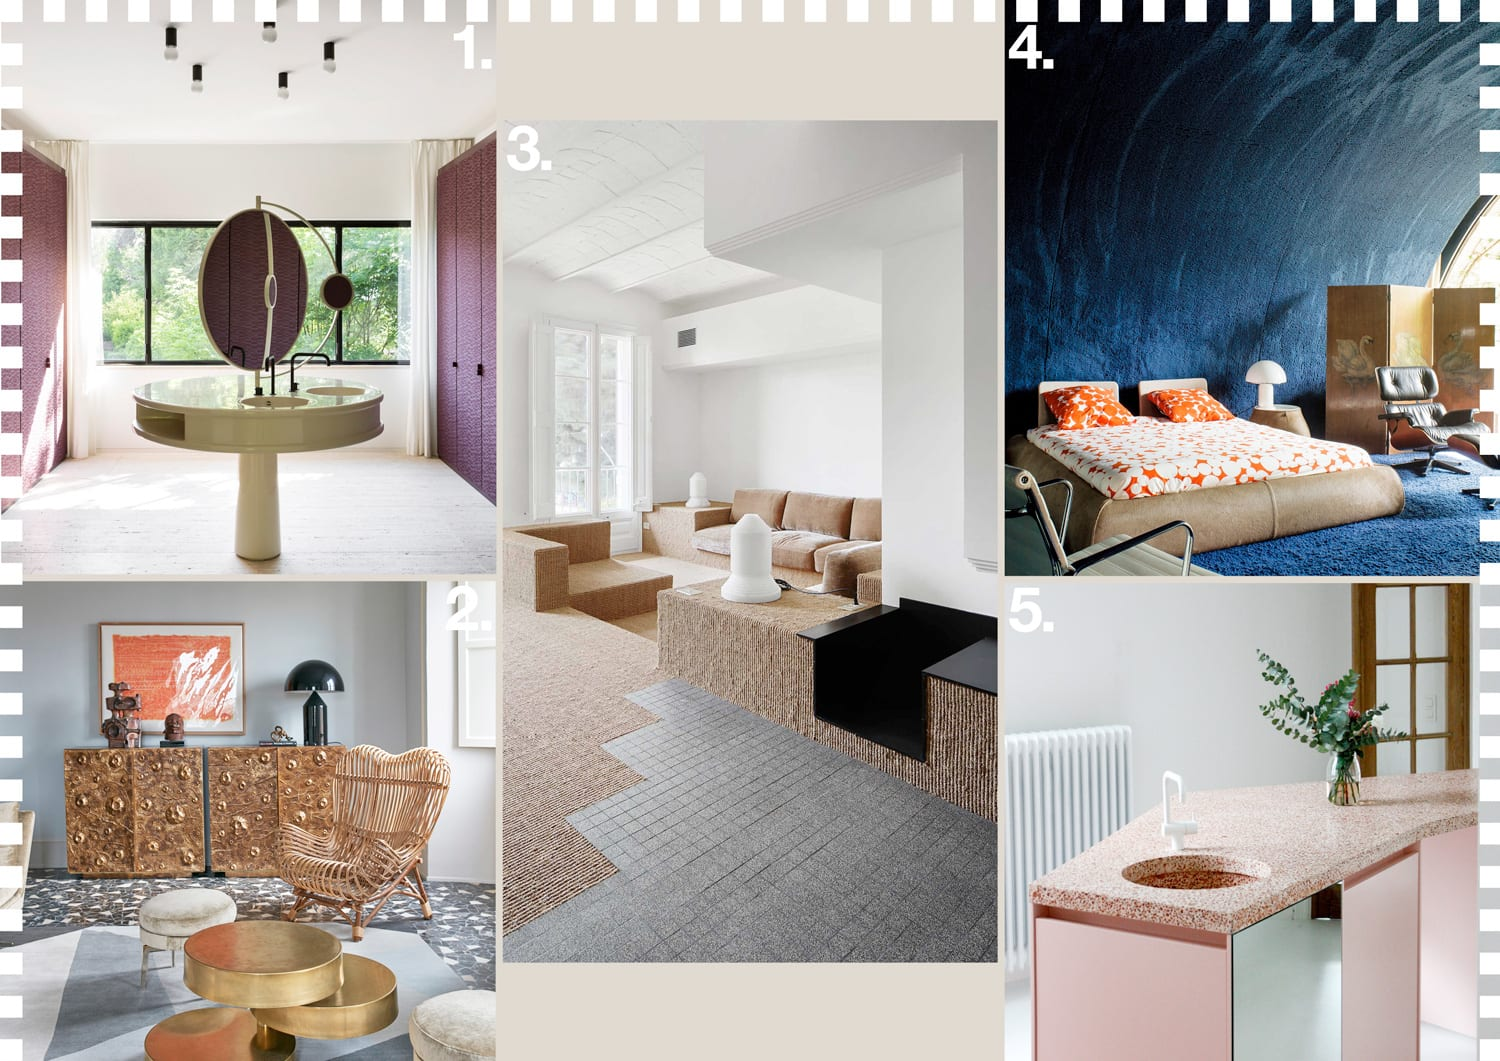 Residential Interior Design 2017 Archive | Yellowtrace